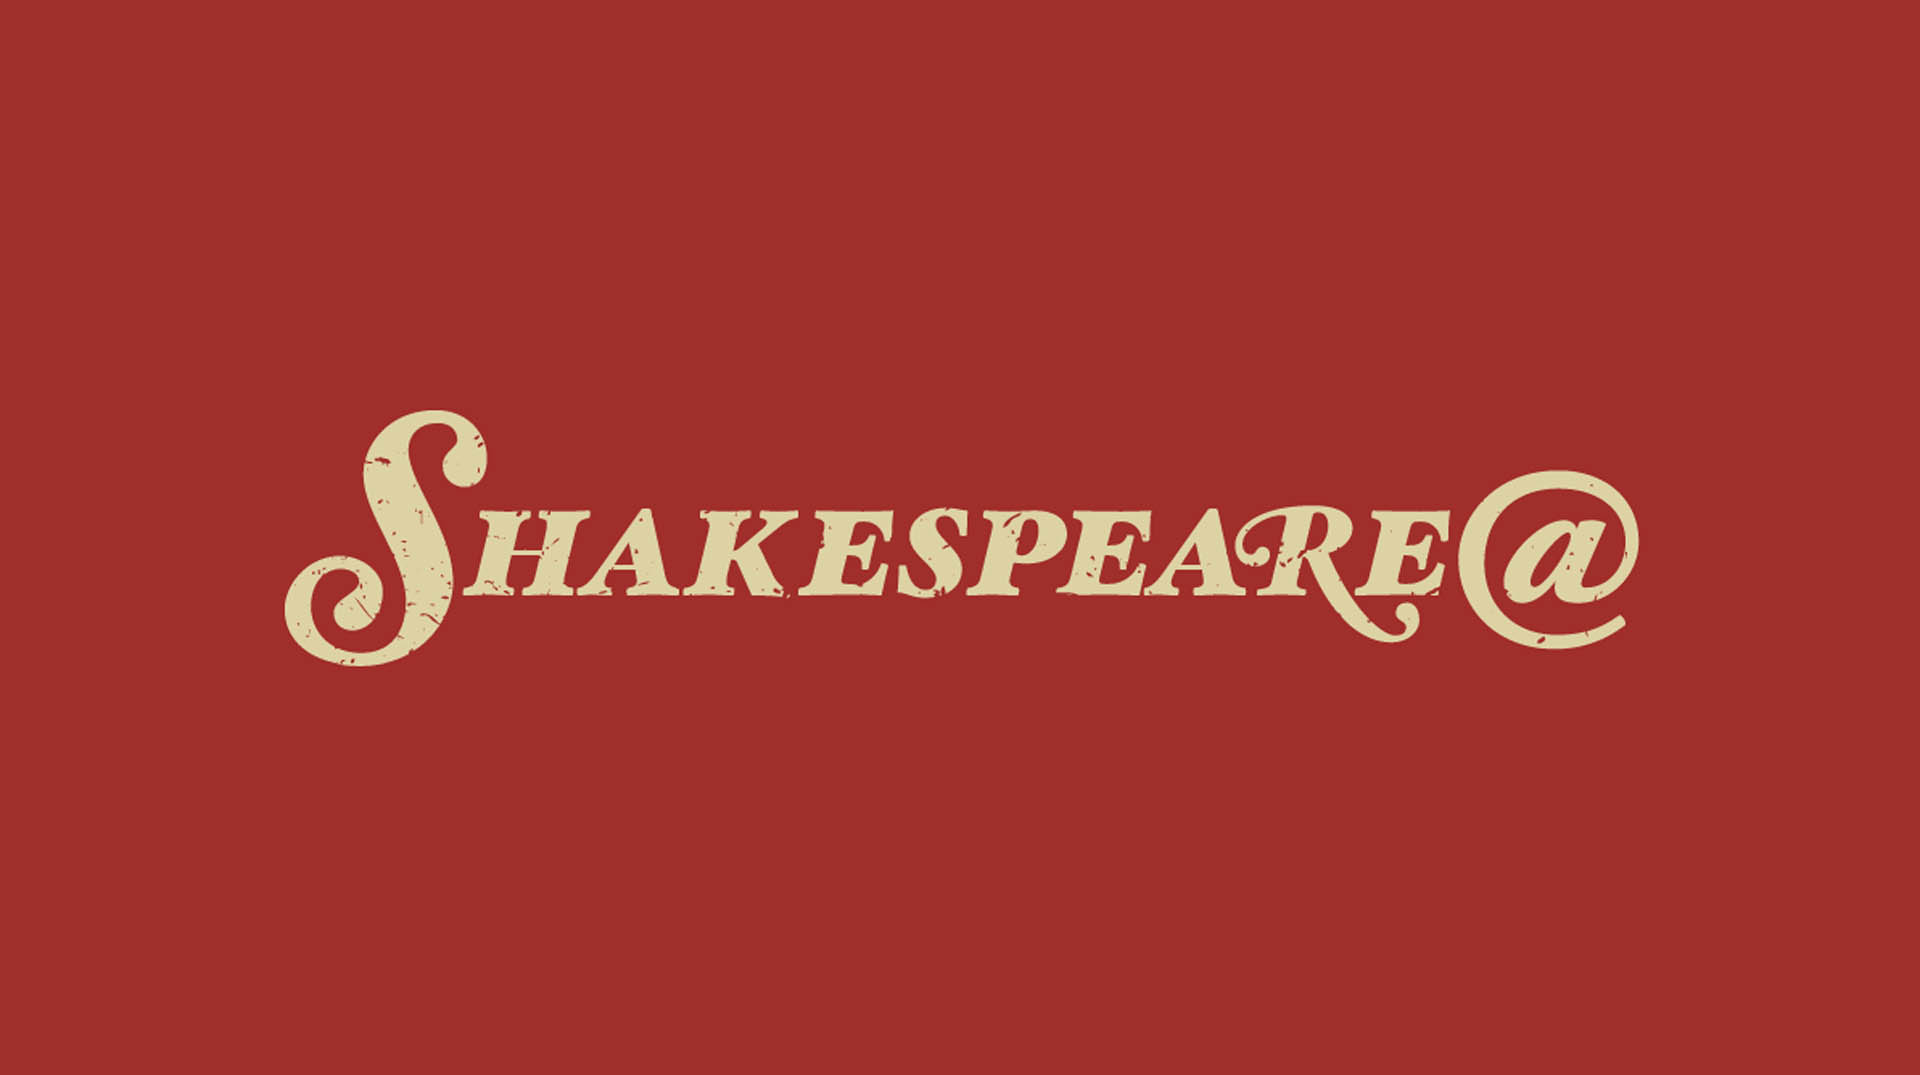 Shakespeare@ logo.jpg